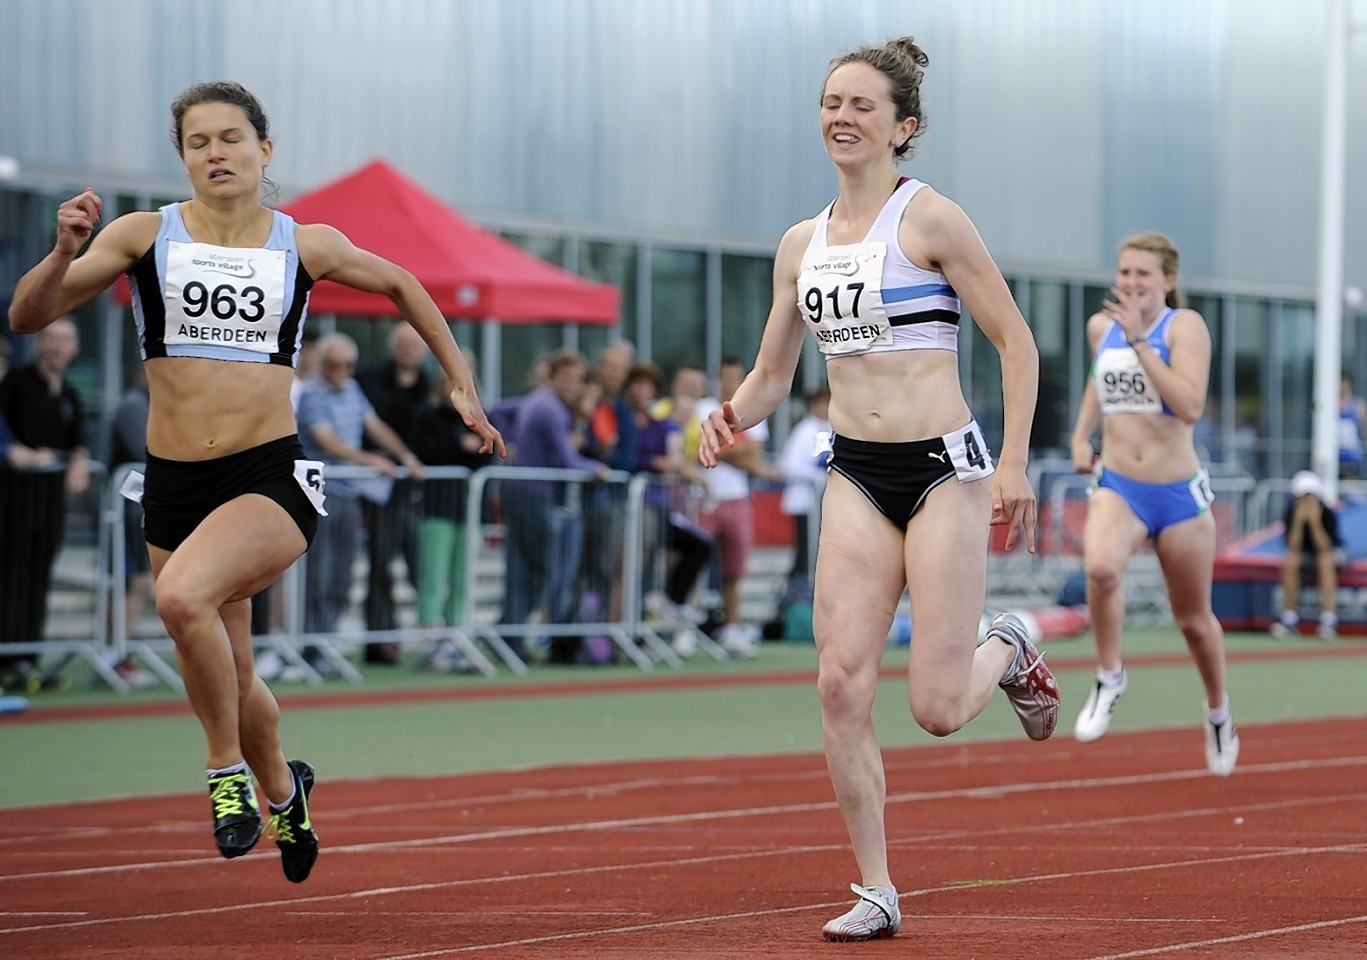 Kathryn Christie (left) is hoping to make the Scotland team for the Commonwealth Games